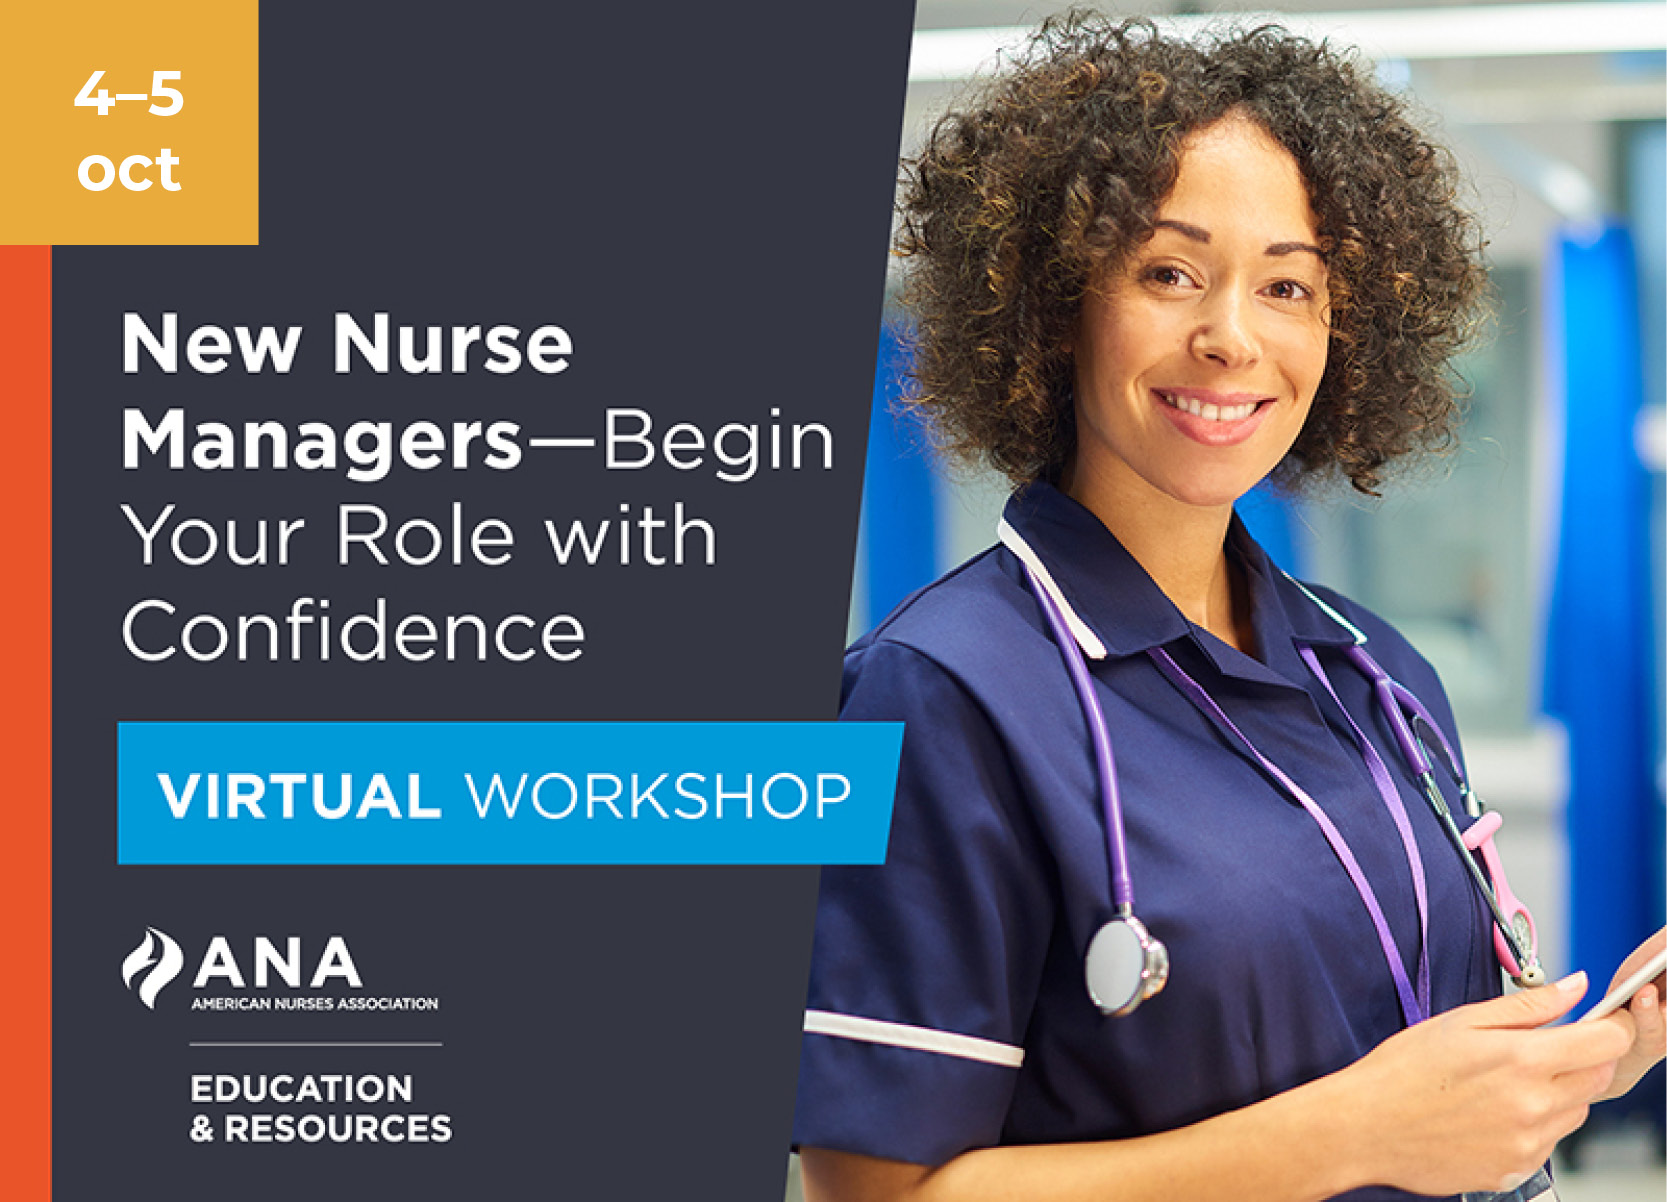 October 4–5. New Nurse Managers. Begin your role with confidence. Virtual Workshop. American Nurses Association Education and Resources.